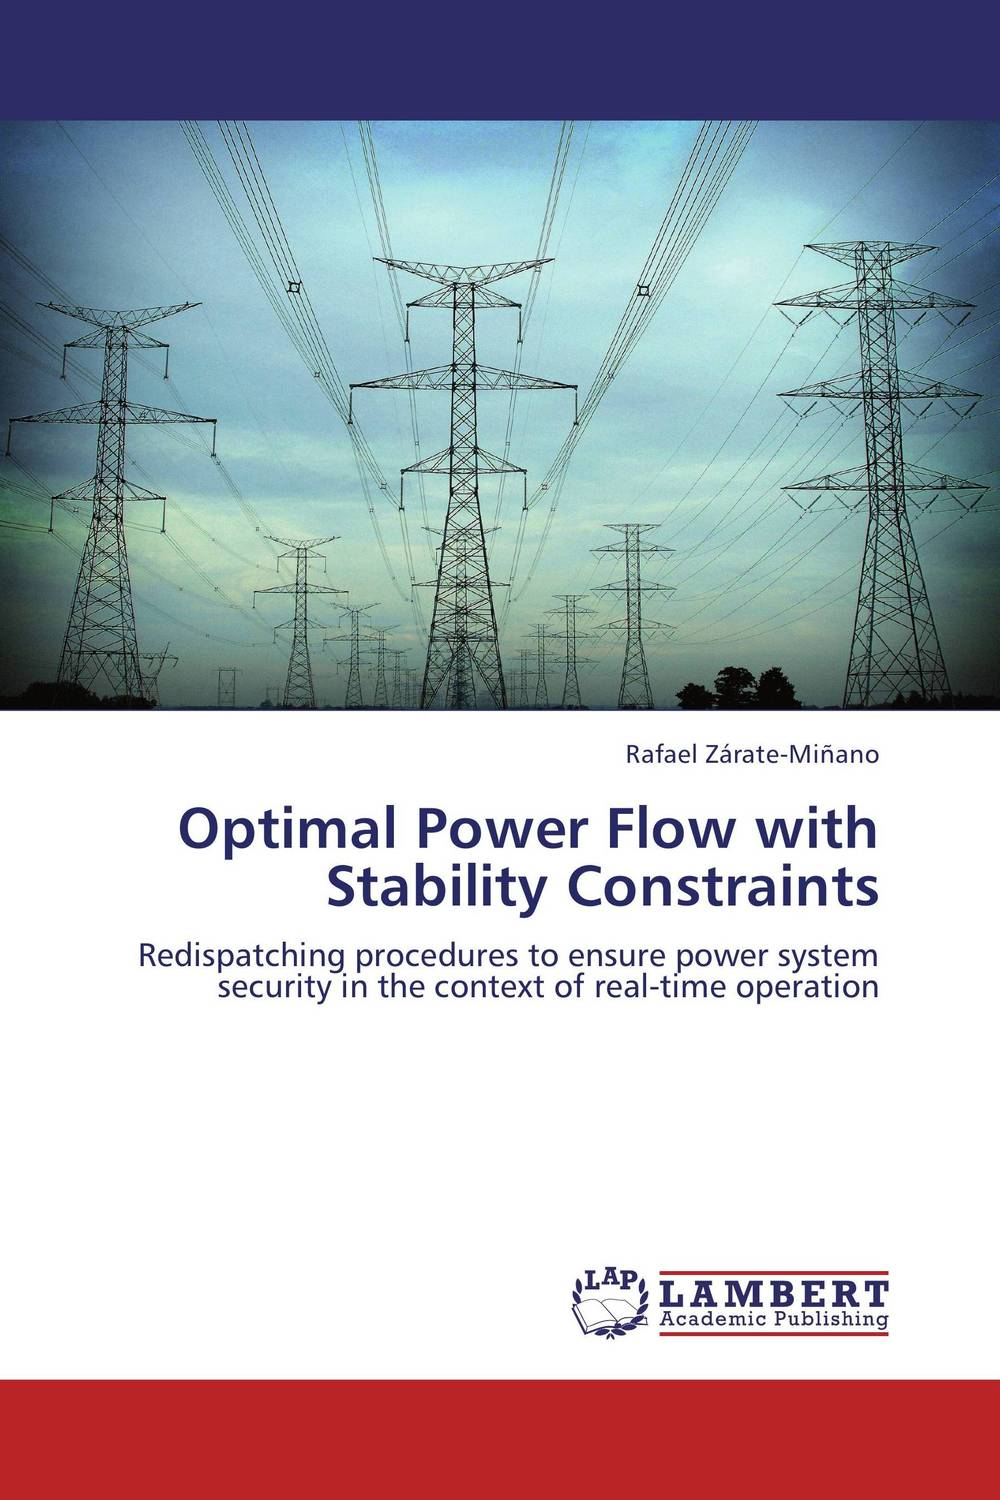 Optimal Power Flow with Stability Constraints point systems migration policy and international students flow